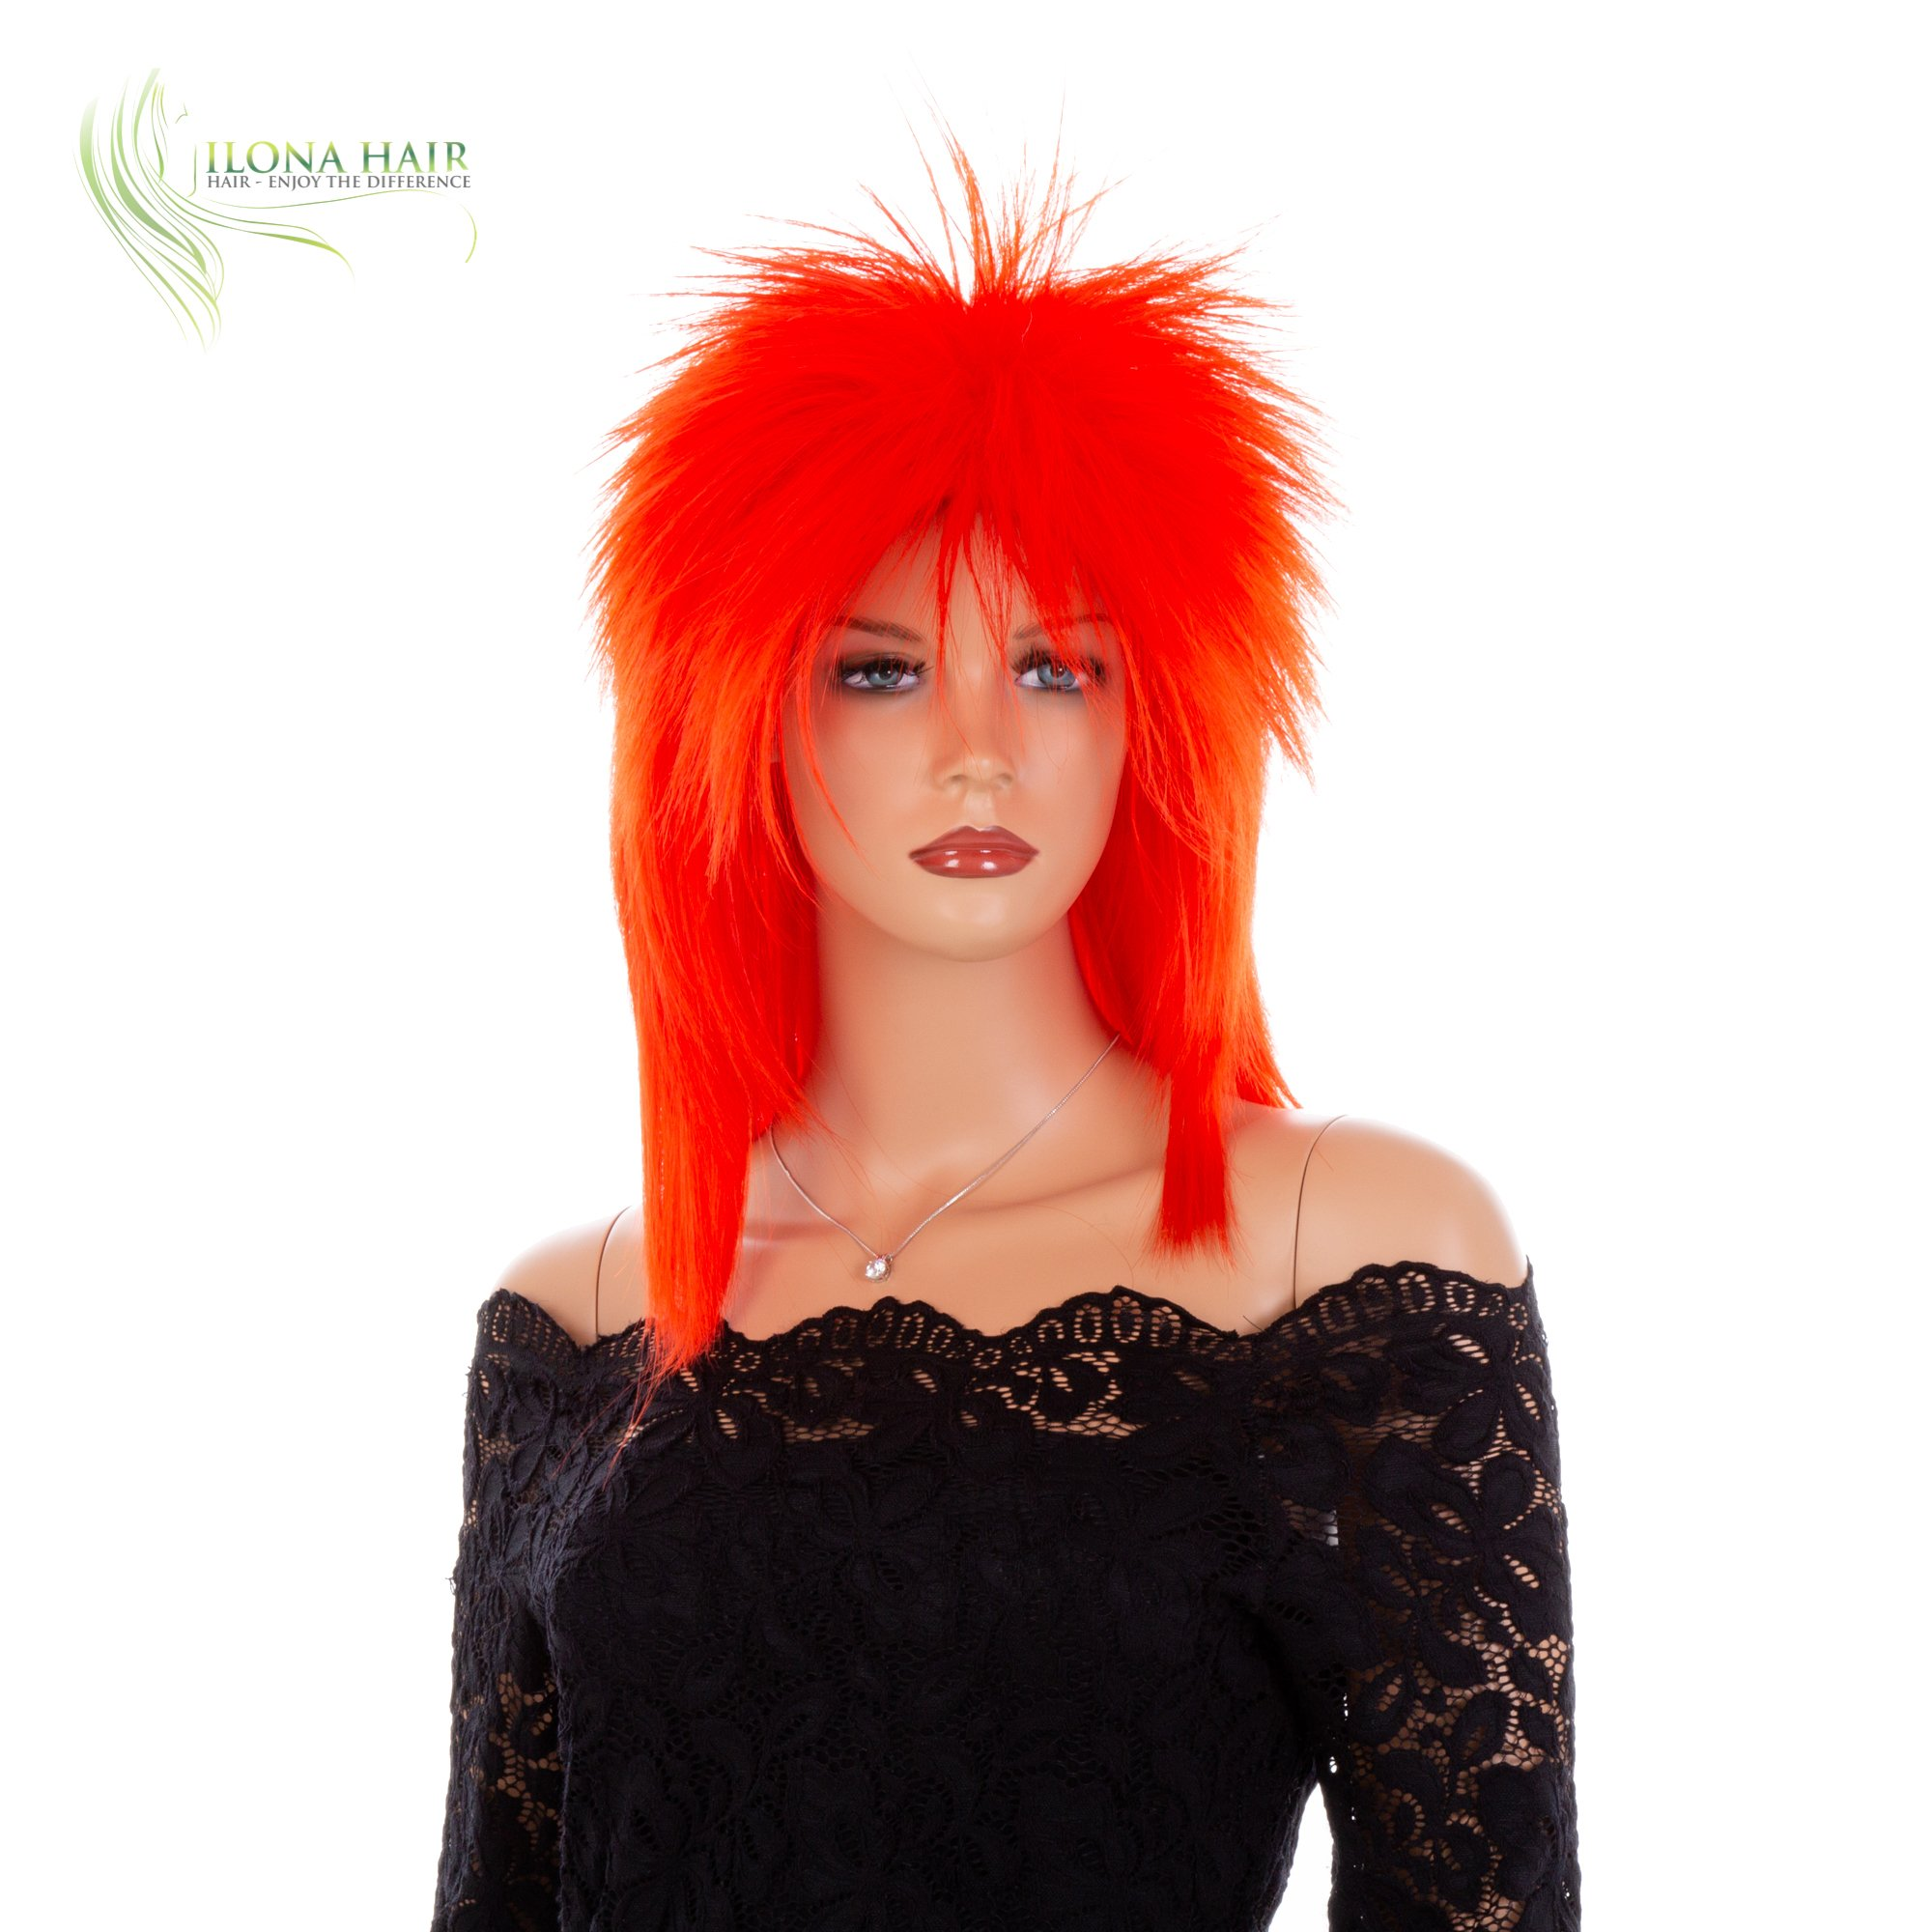 Punk Rocker Rockstar Glam Colorful Wig for Party Halloween Off-White Black Green Pink Purple Red (DF1)